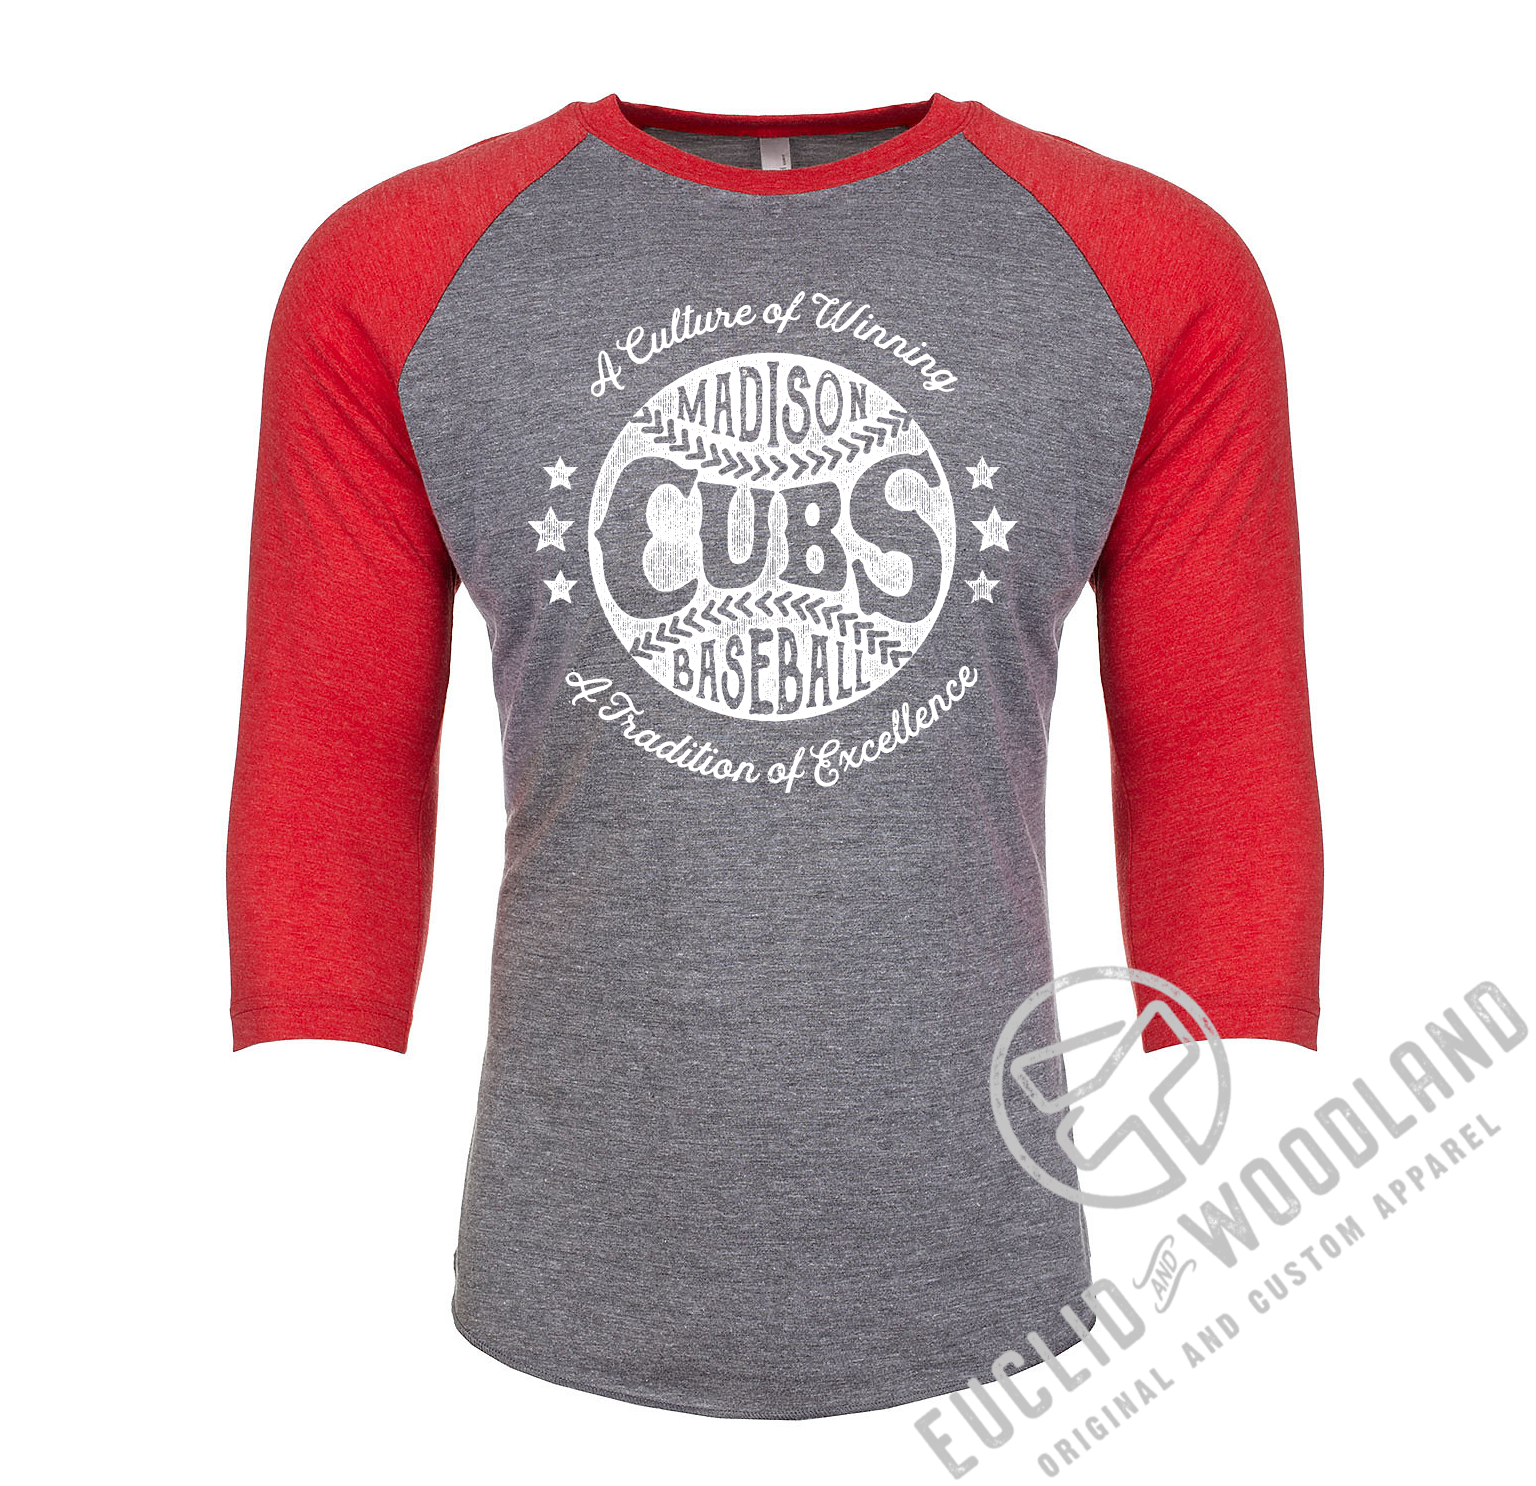 Madison Cubs Baseball Raglan Tee